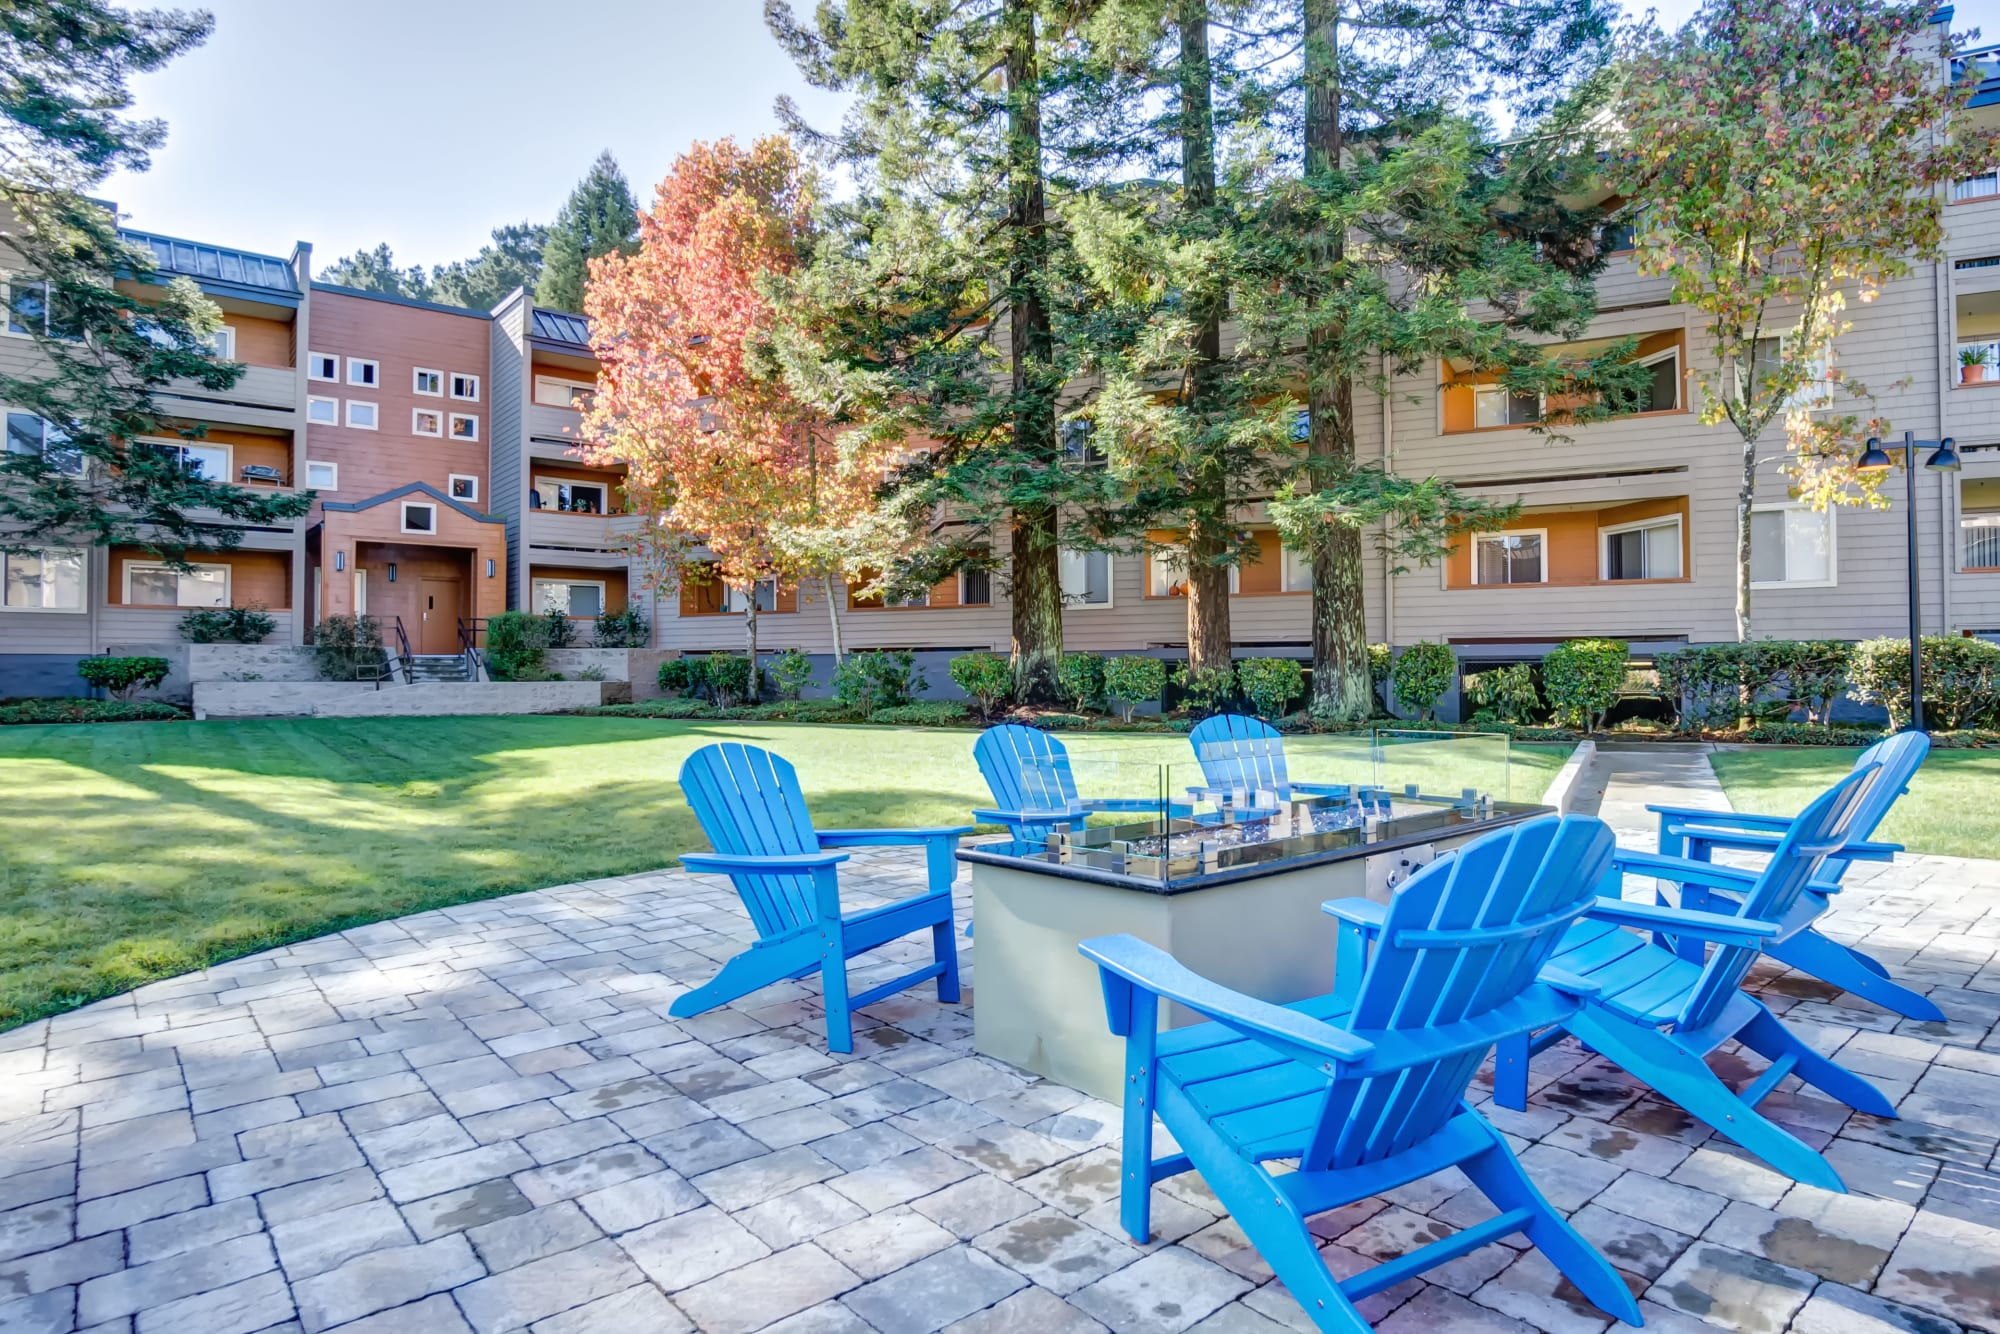 Adirondack chairs around a firepit at Serramonte Ridge Apartment Homes in Daly City, California